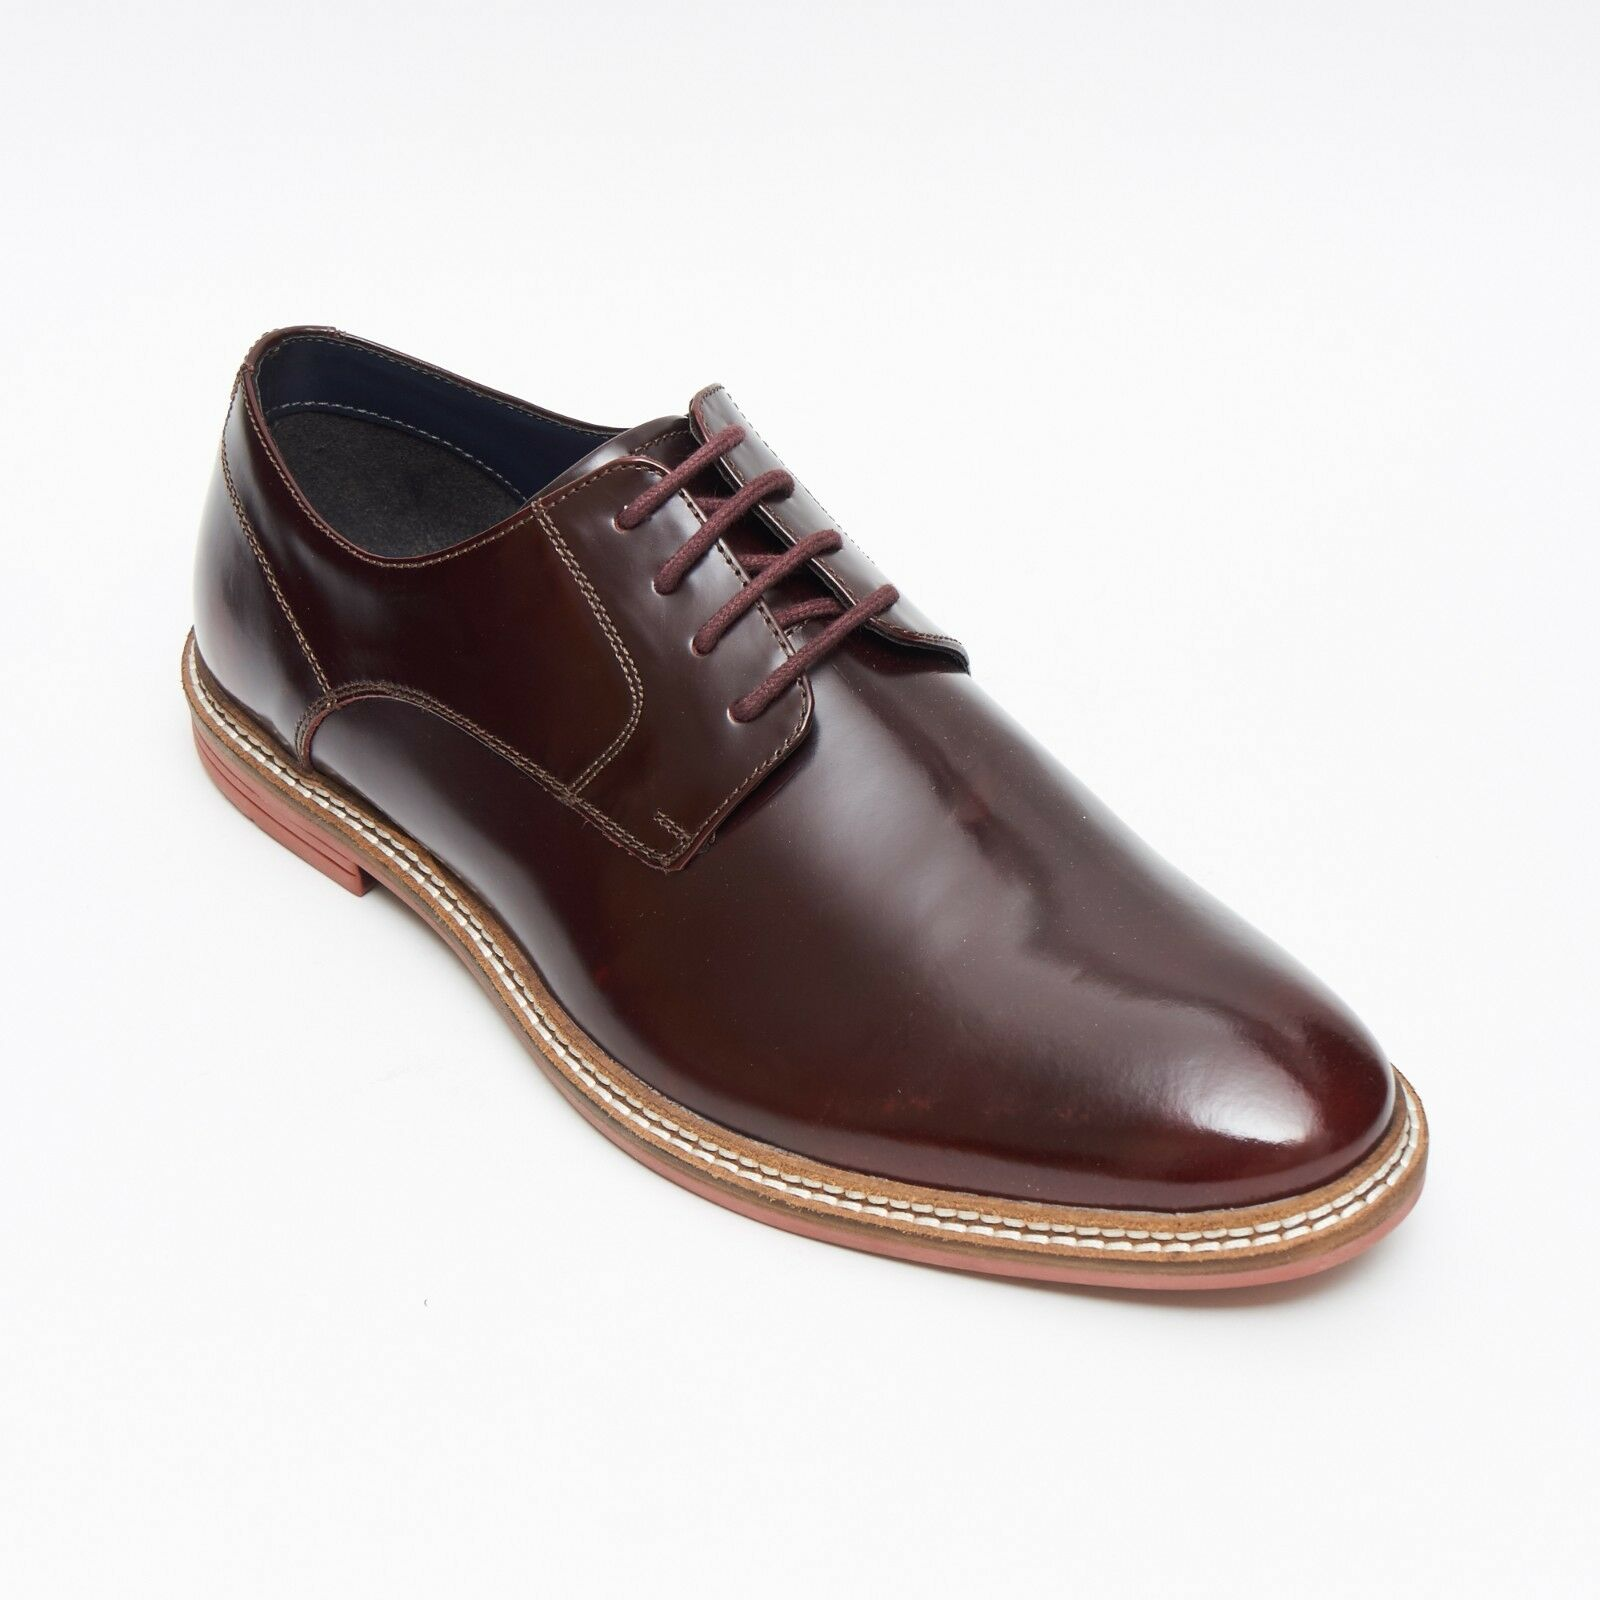 Lucini Formal Men Burgundy Leather Formal Lace-Up Shoes Wedding Office